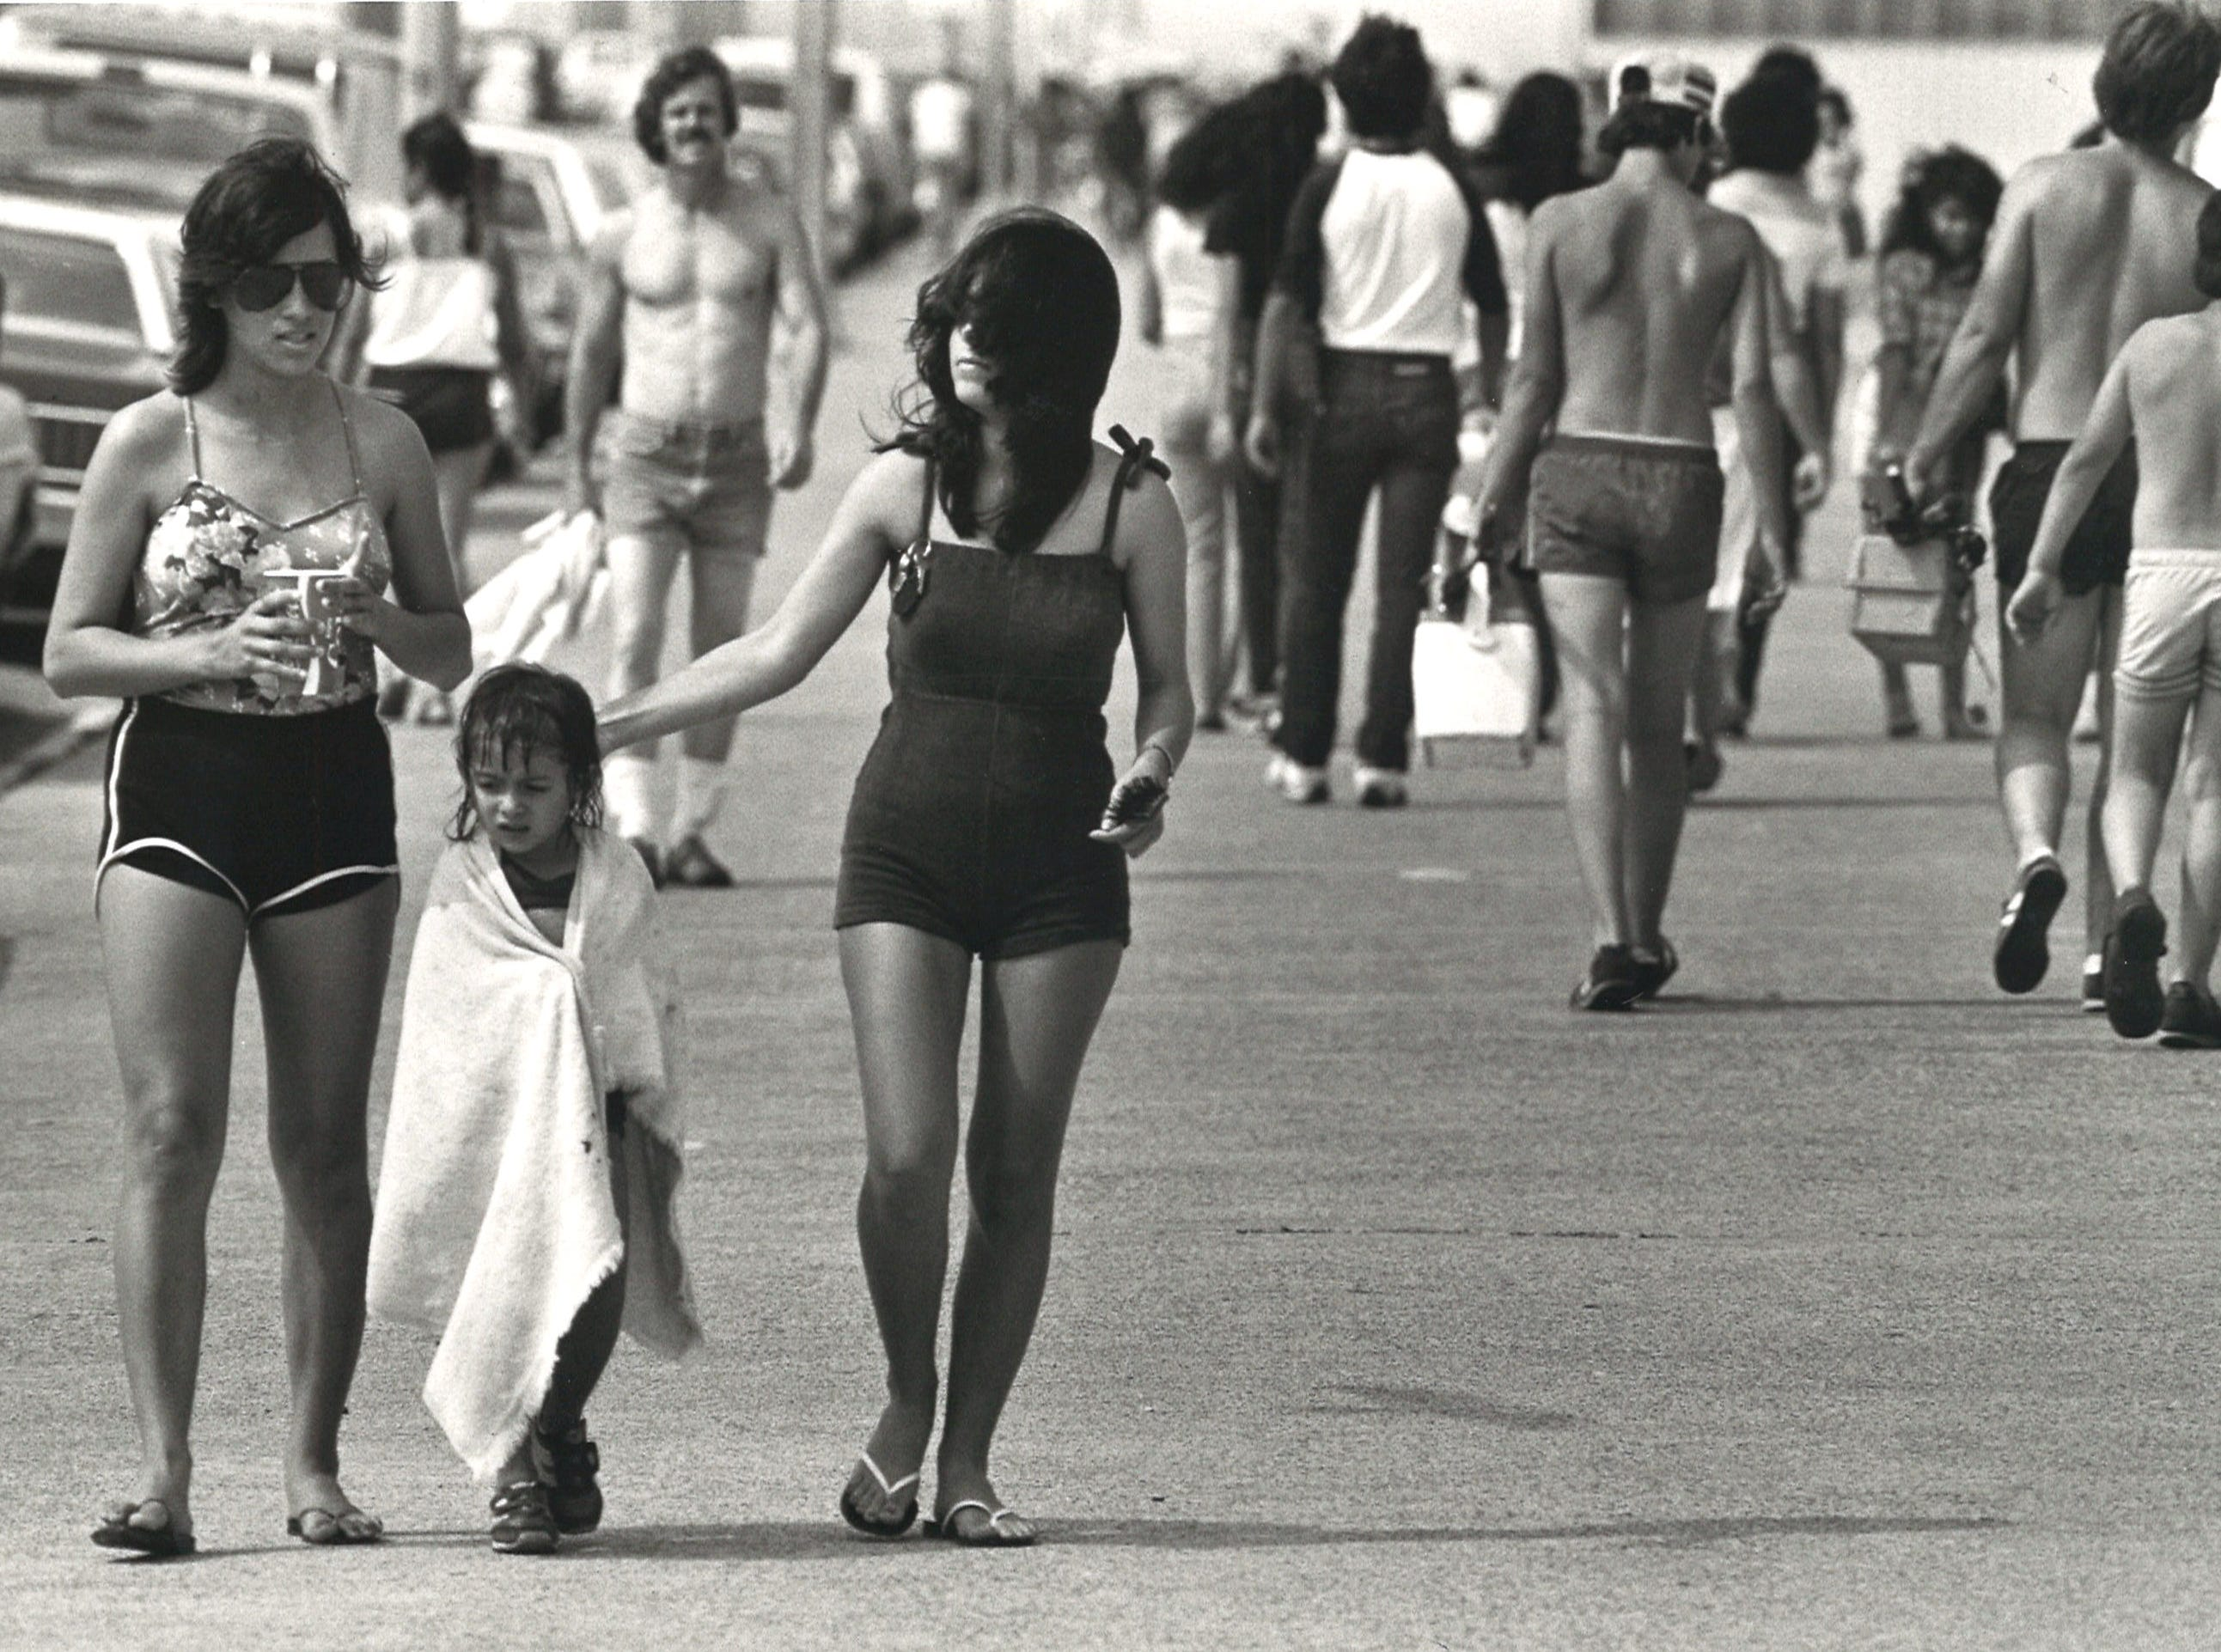 The sidewalk above the seawall at McGee Beach in downtown Corpus Christi was heavy with pedestrian traffic on May 8, 1983.